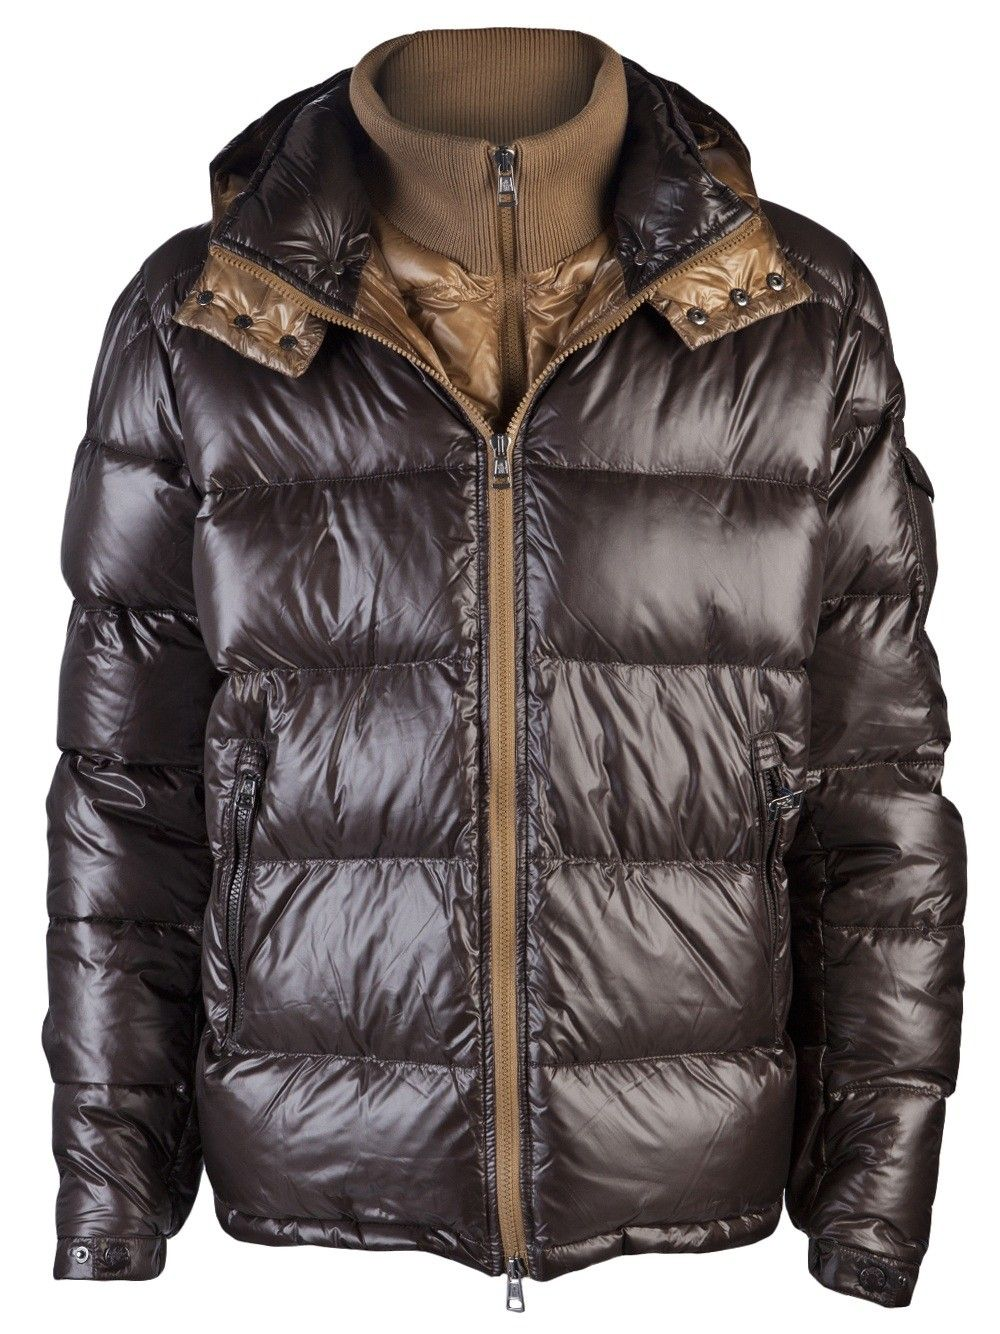 Cheap Moncler Jacket Moncler 2013 New Mens Zin Quilted